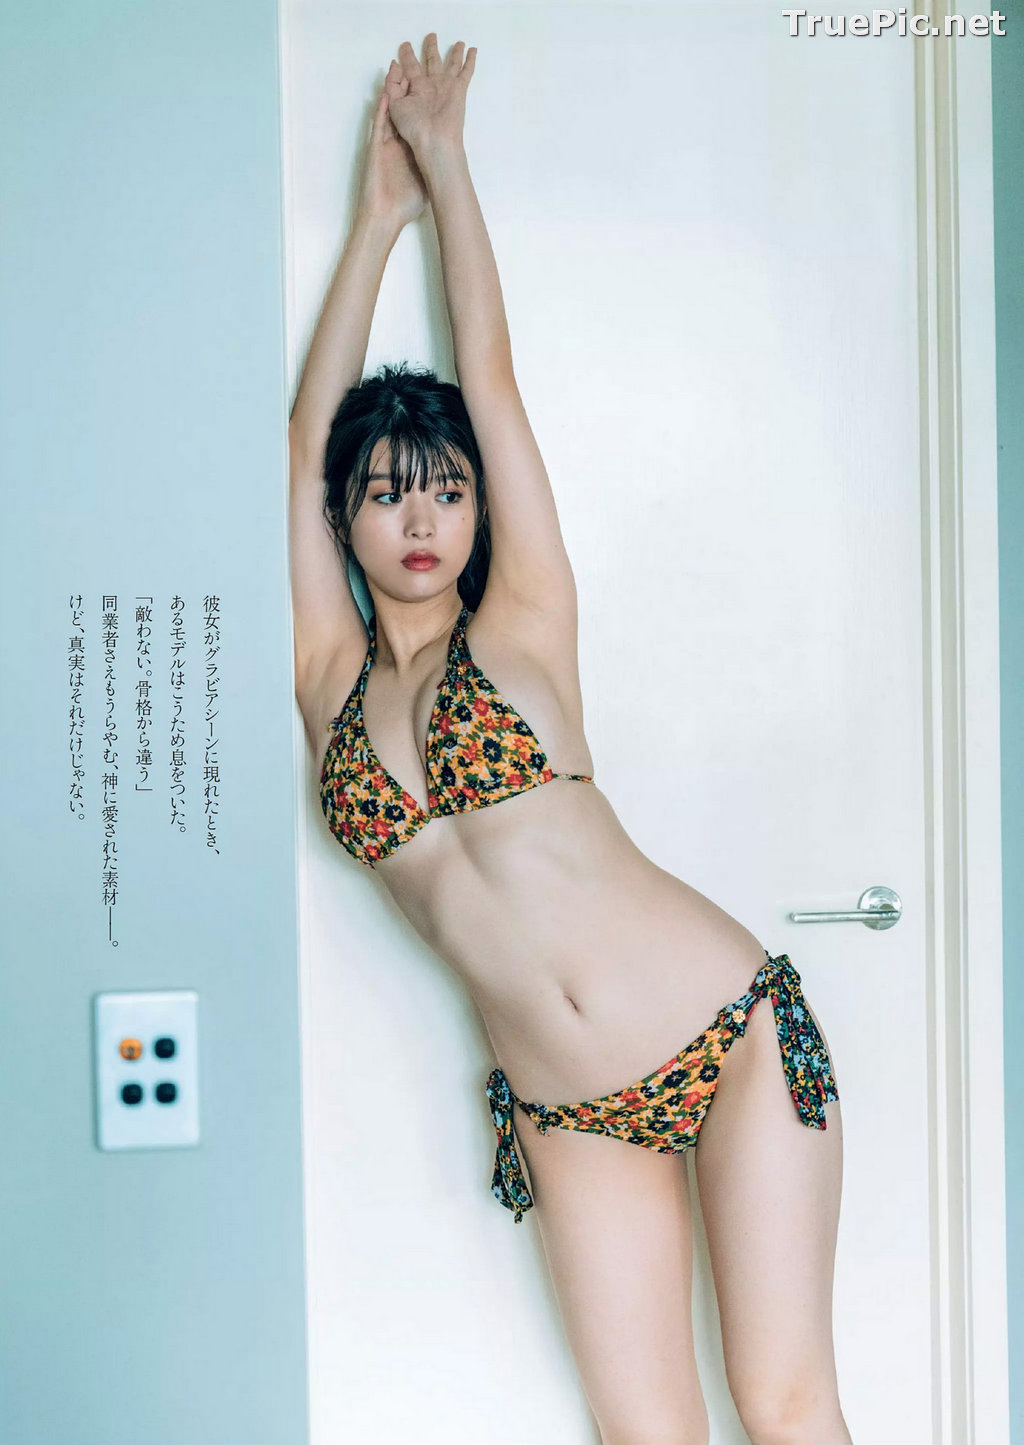 Image Japanese Actress and Model - Baba Fumika - Sexy Picture Collection - TruePic.net - Picture-4